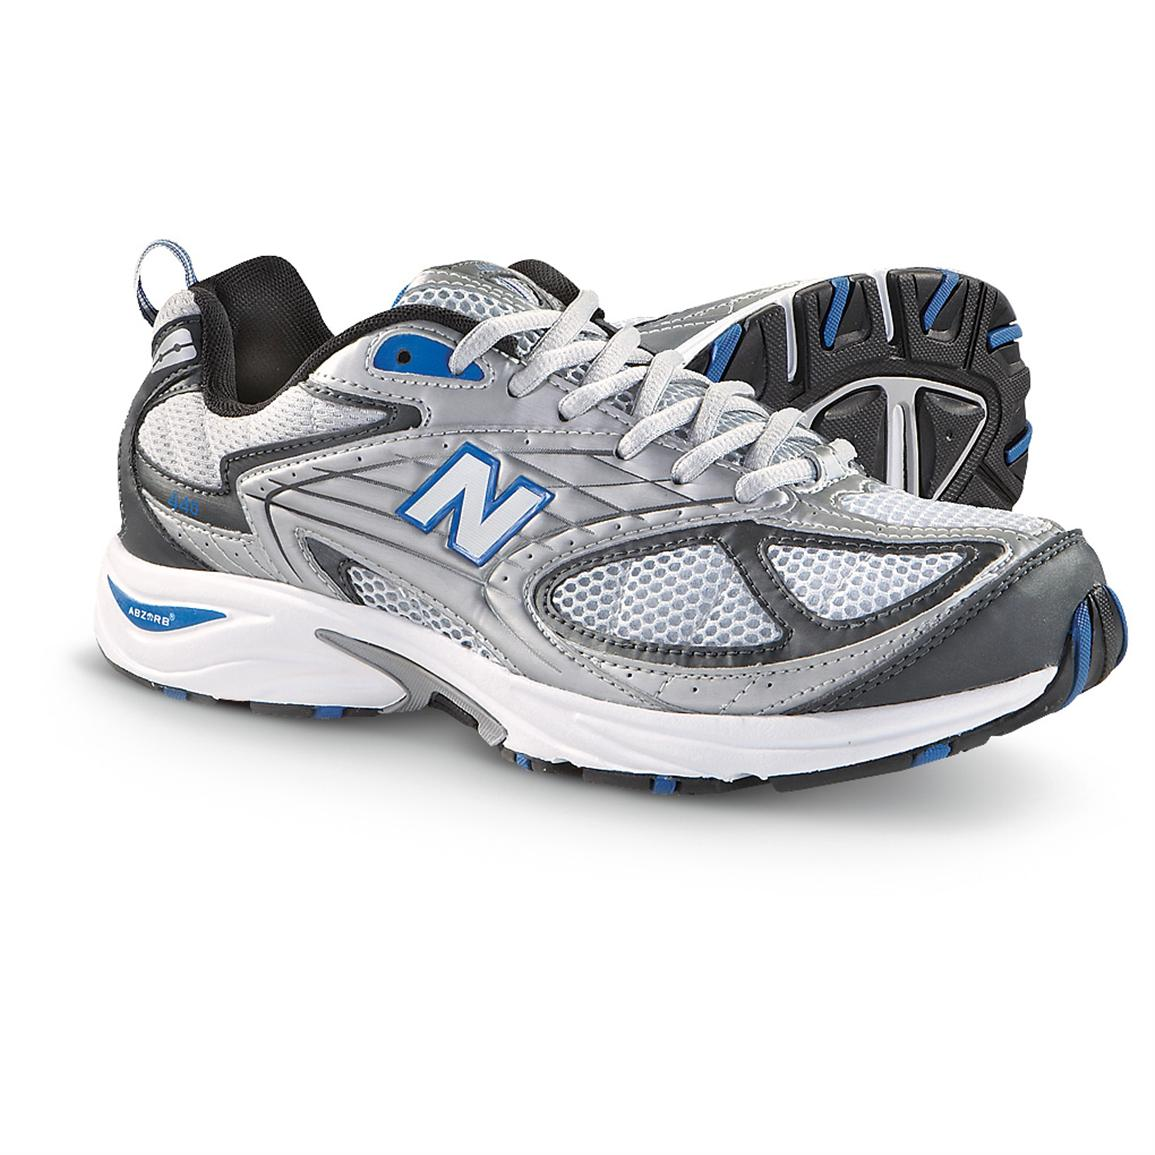 Men's New Balance® 440 Running Shoes, Blue / Silver / White